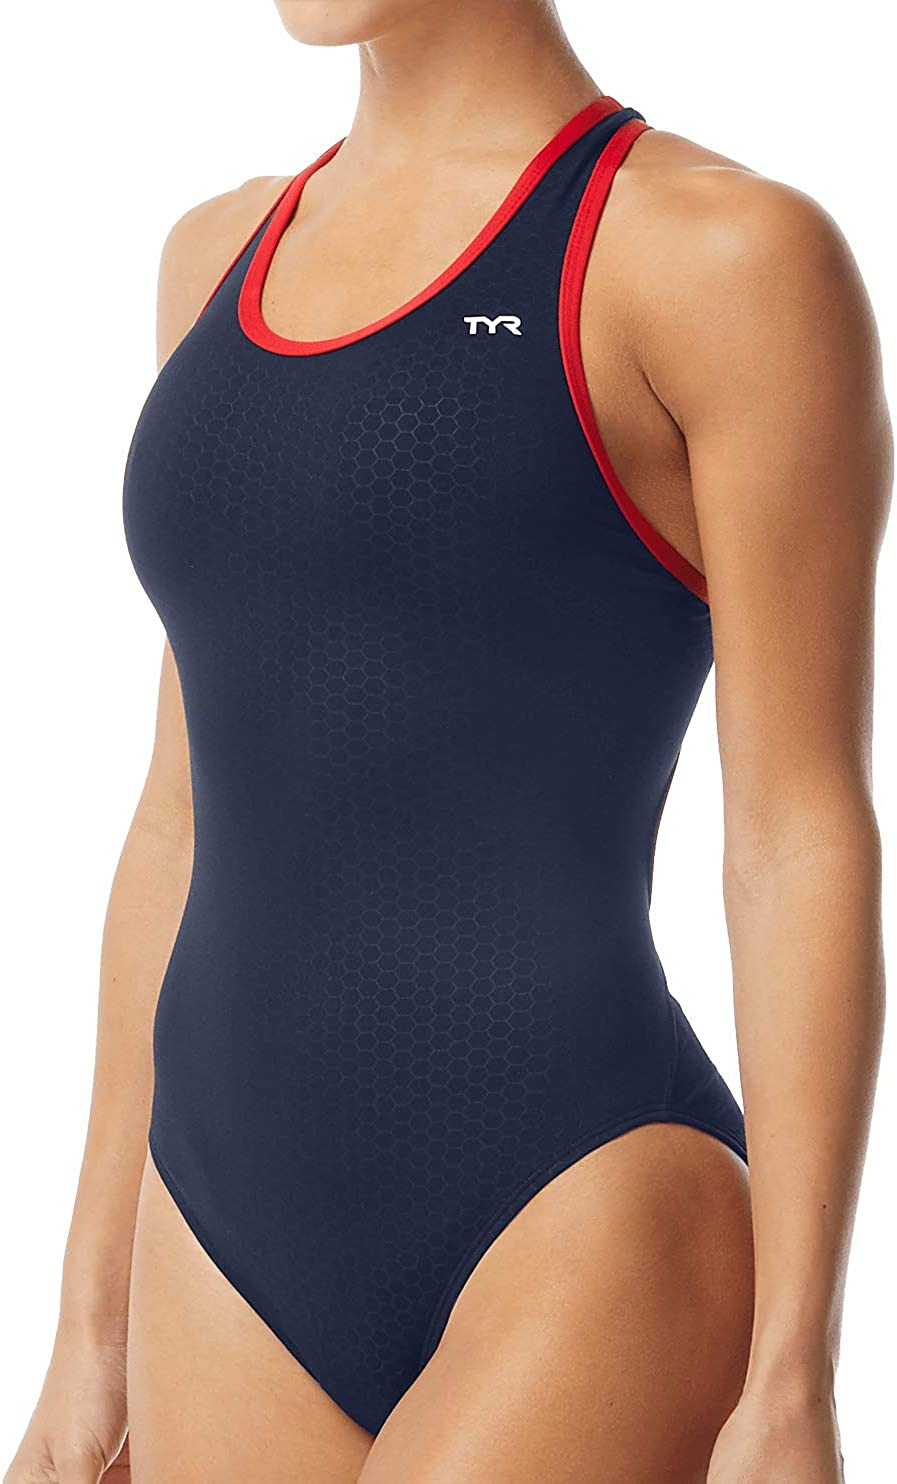 TYR womens Maxfit 5% Limited time cheap sale OFF Hexa